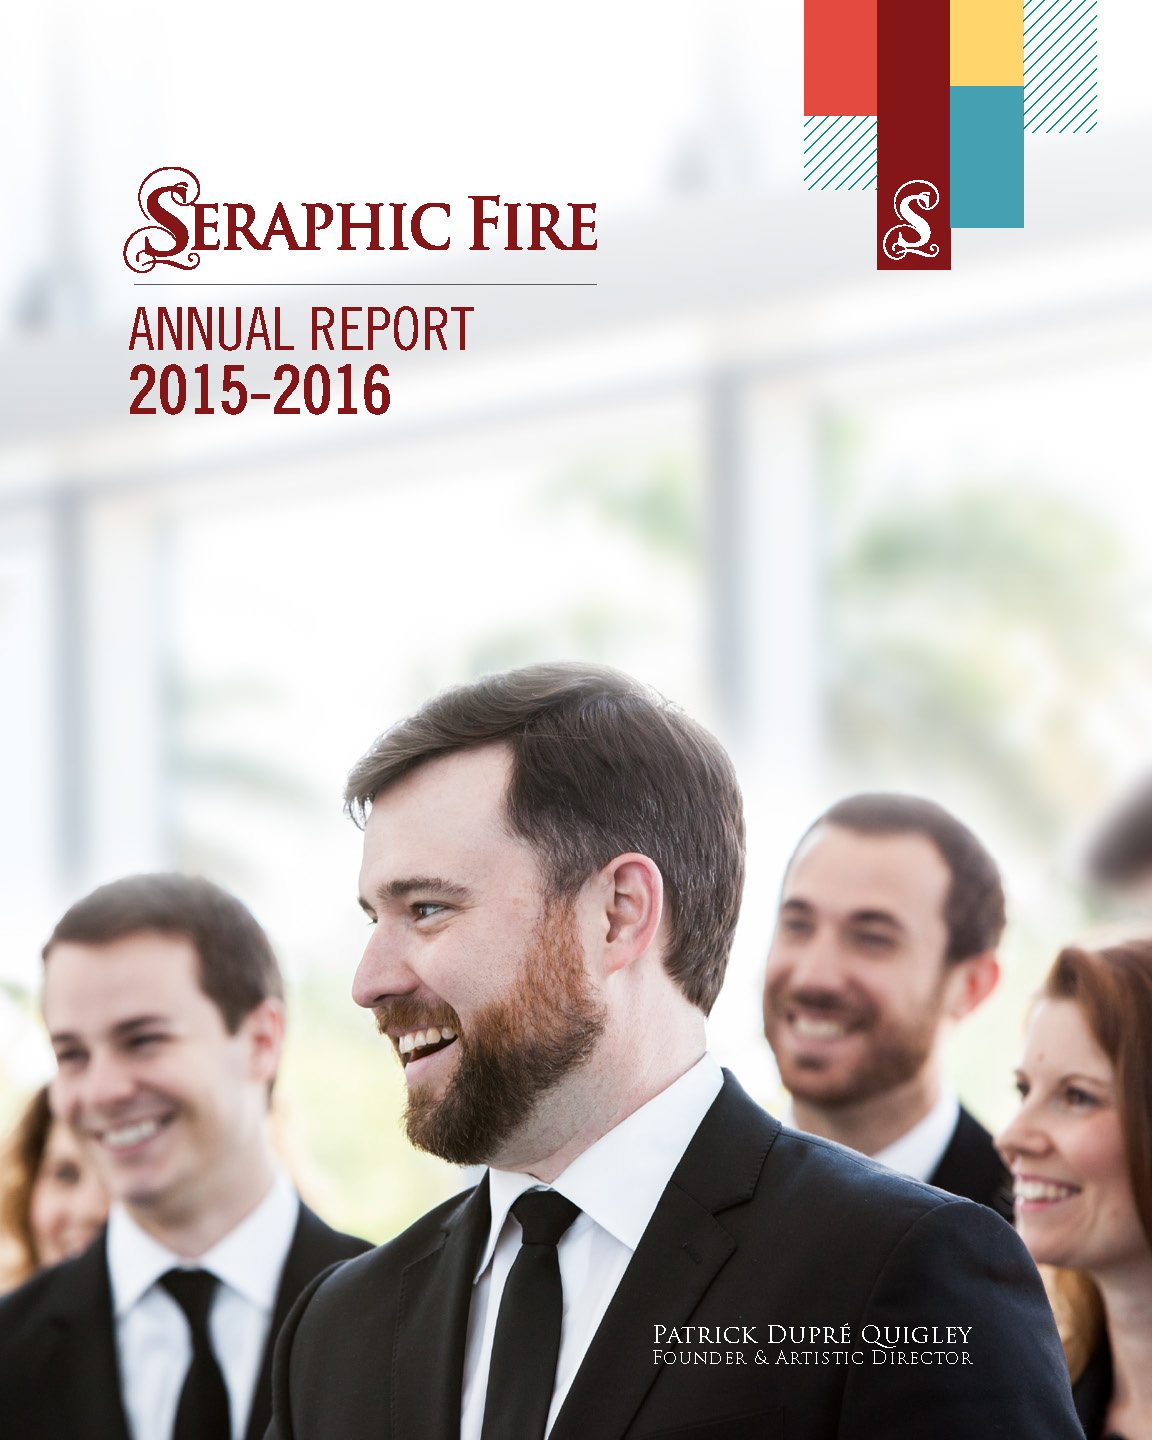 Seraphic Fire - Annual Report 2015-2016